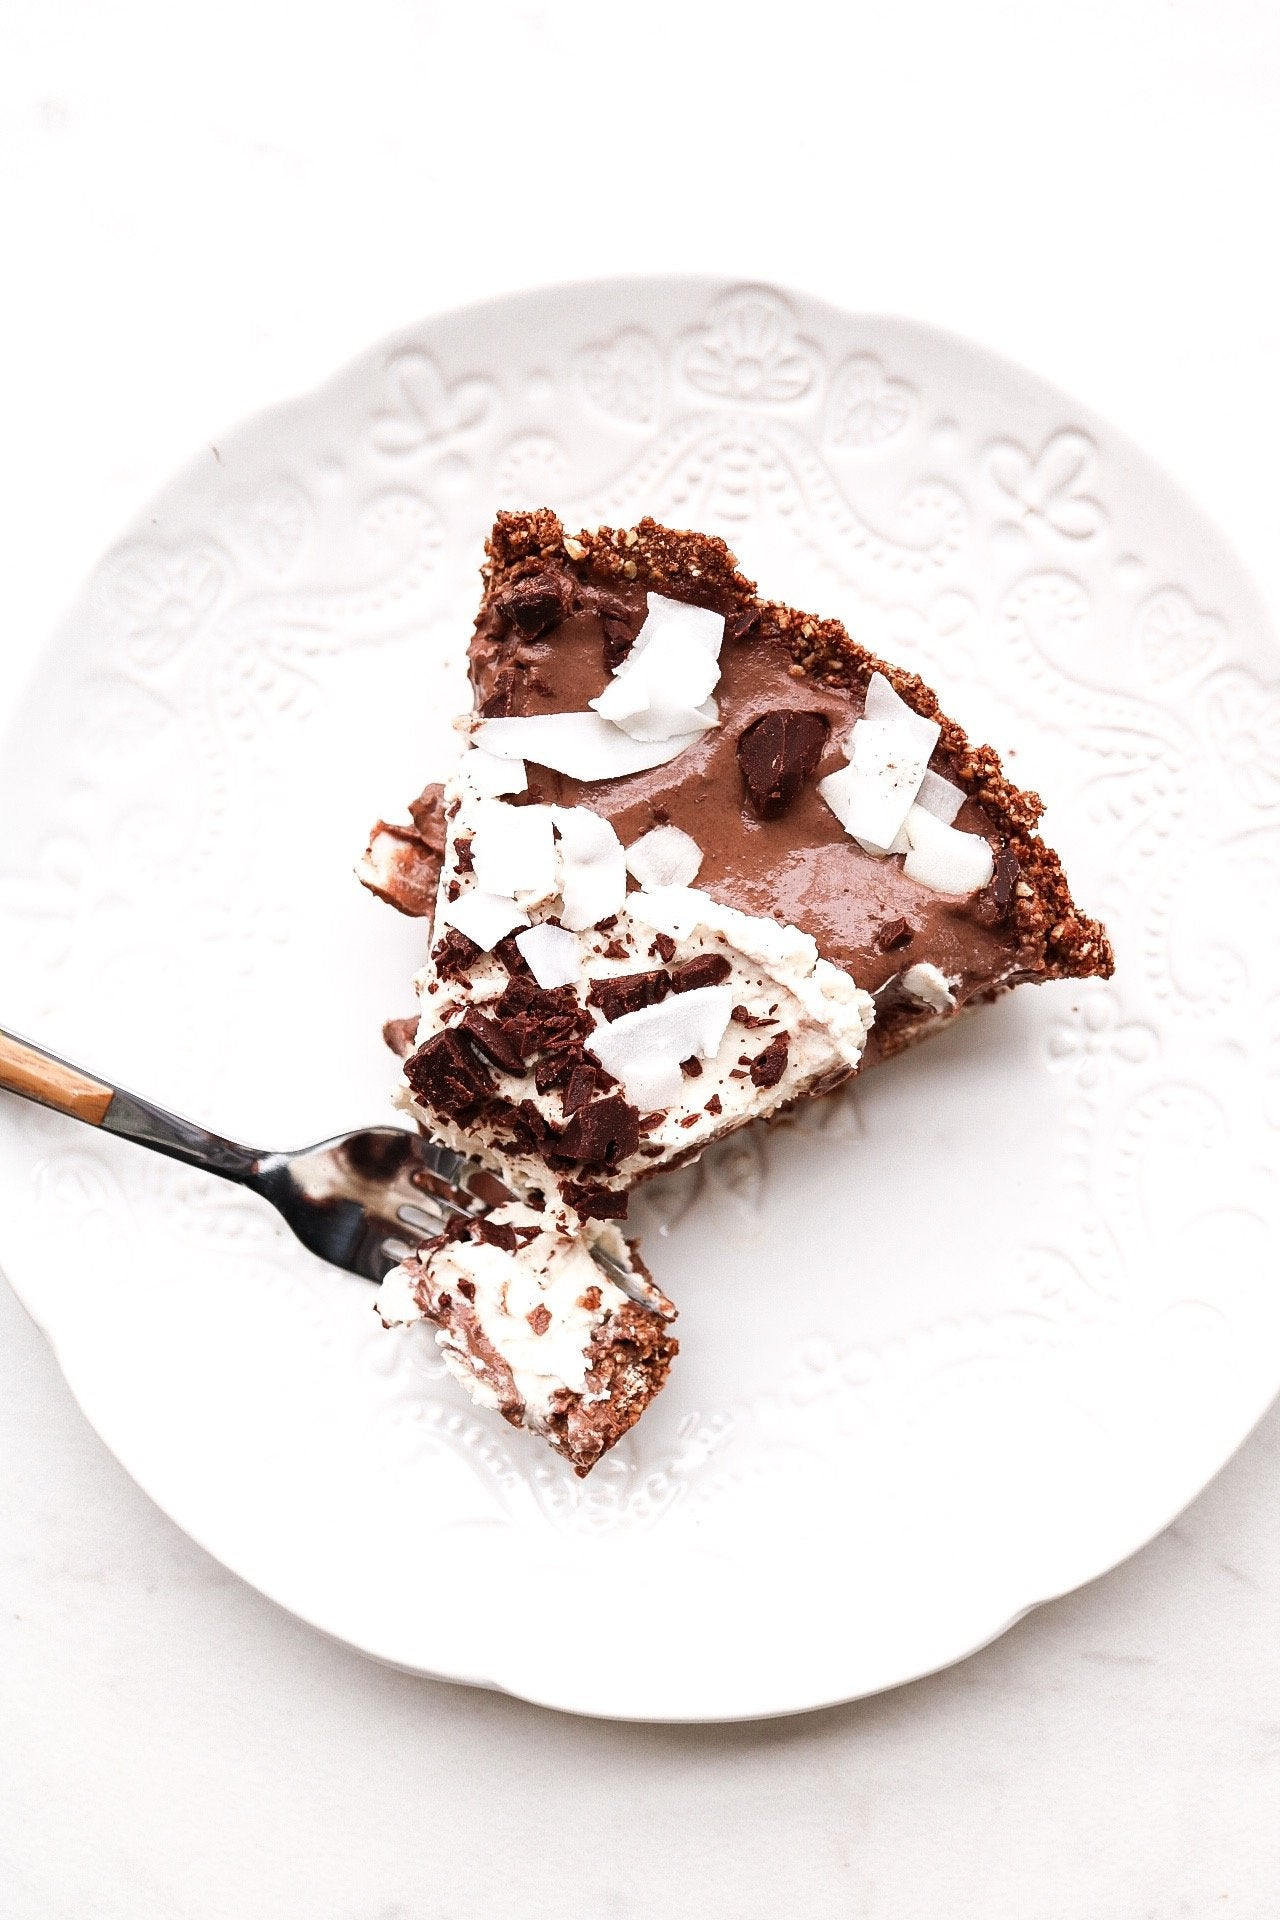 Chocolate Coconut Cream Pie (Vegan & Gluten Free!) Article